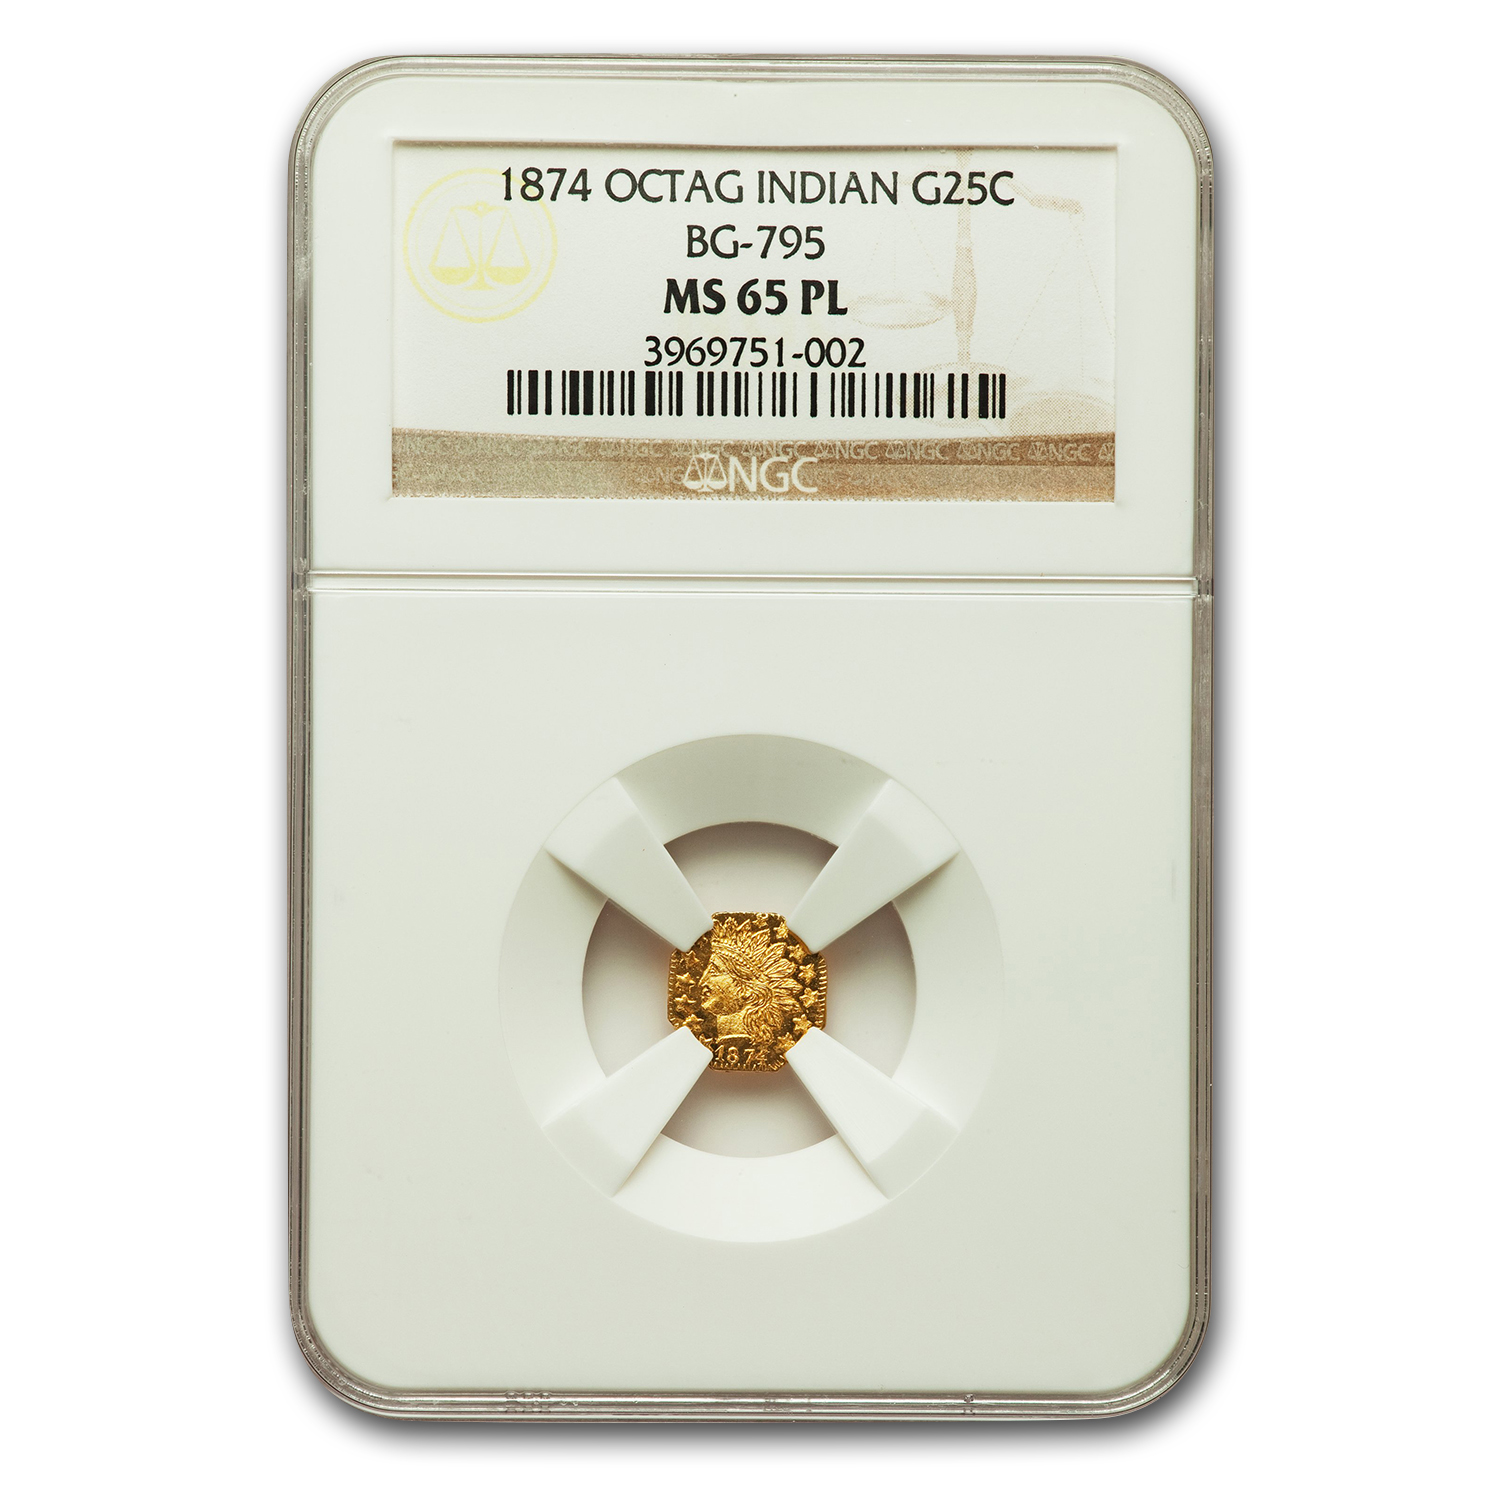 1874 Indian Octagonal 25¢ Gold MS-65 NGC (PL, BG-795)